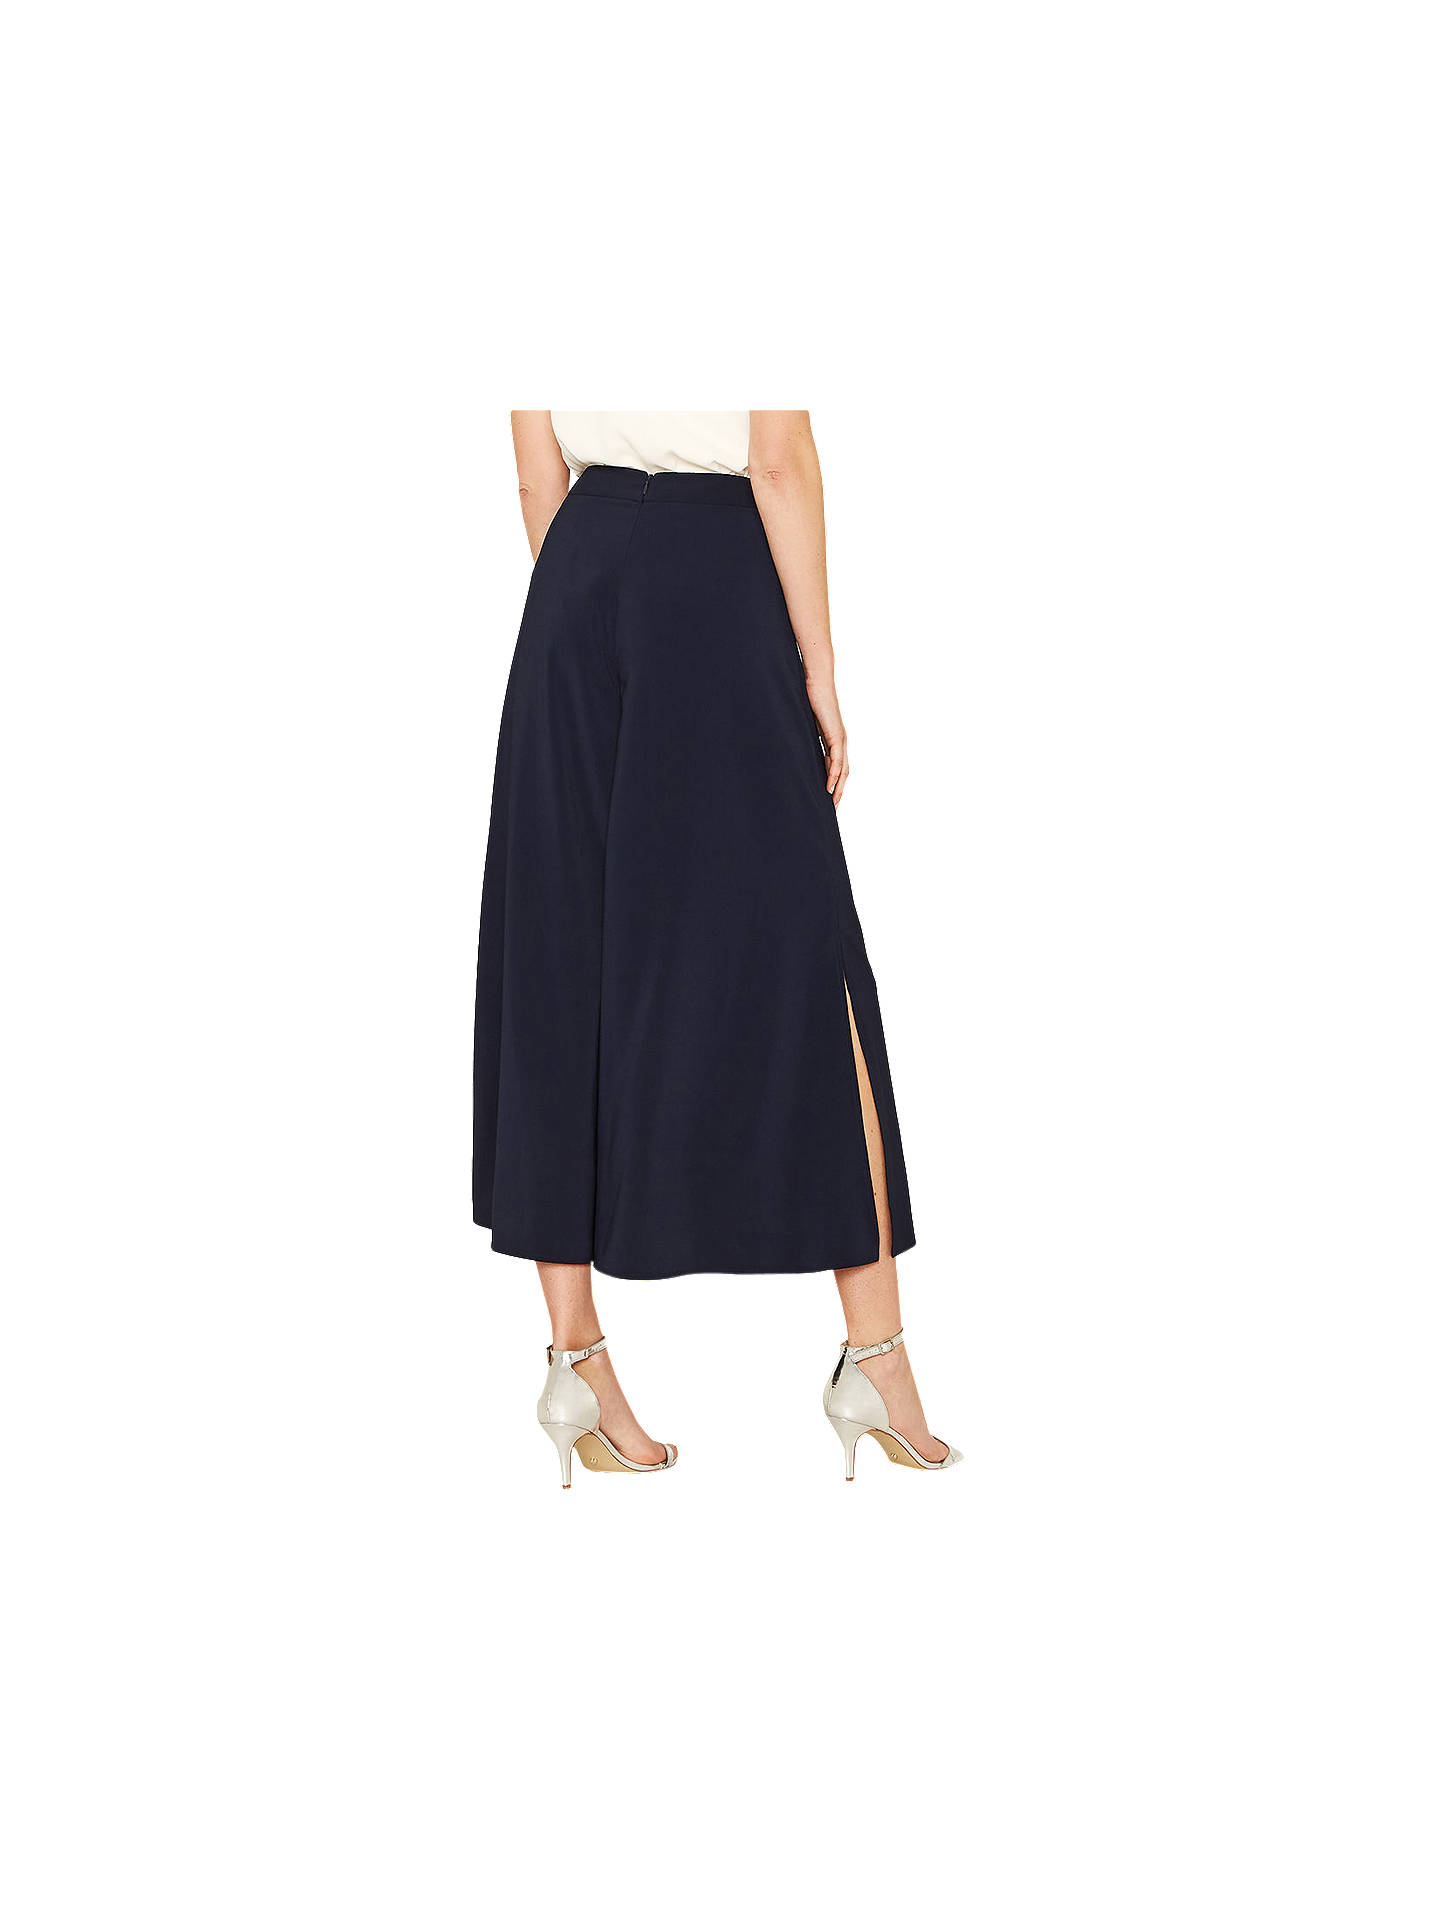 BuyOasis Palazzo Trousers, Navy, 12 Online at johnlewis.com